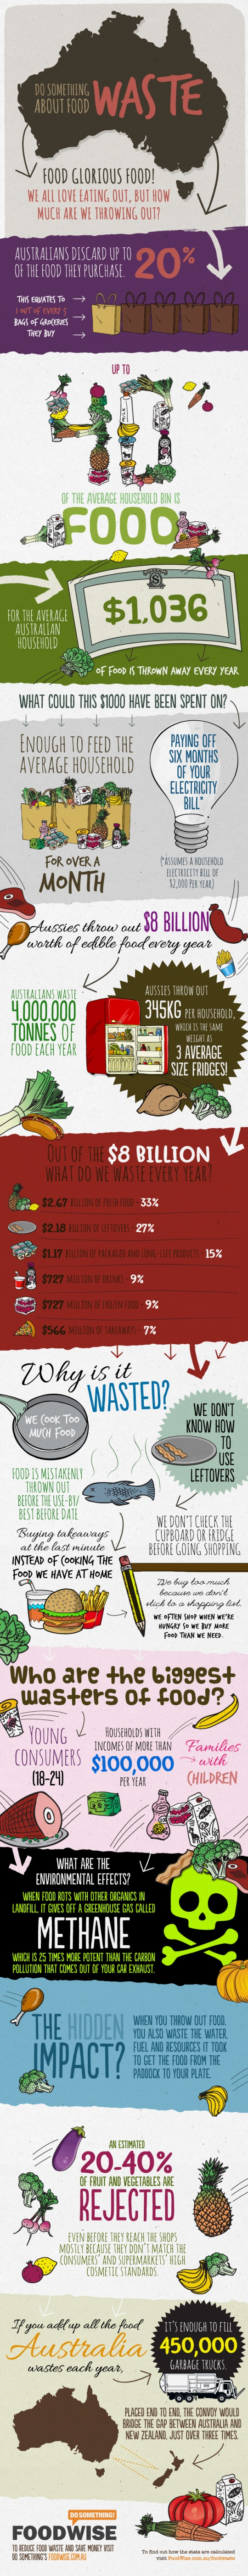 Food Waste Stats